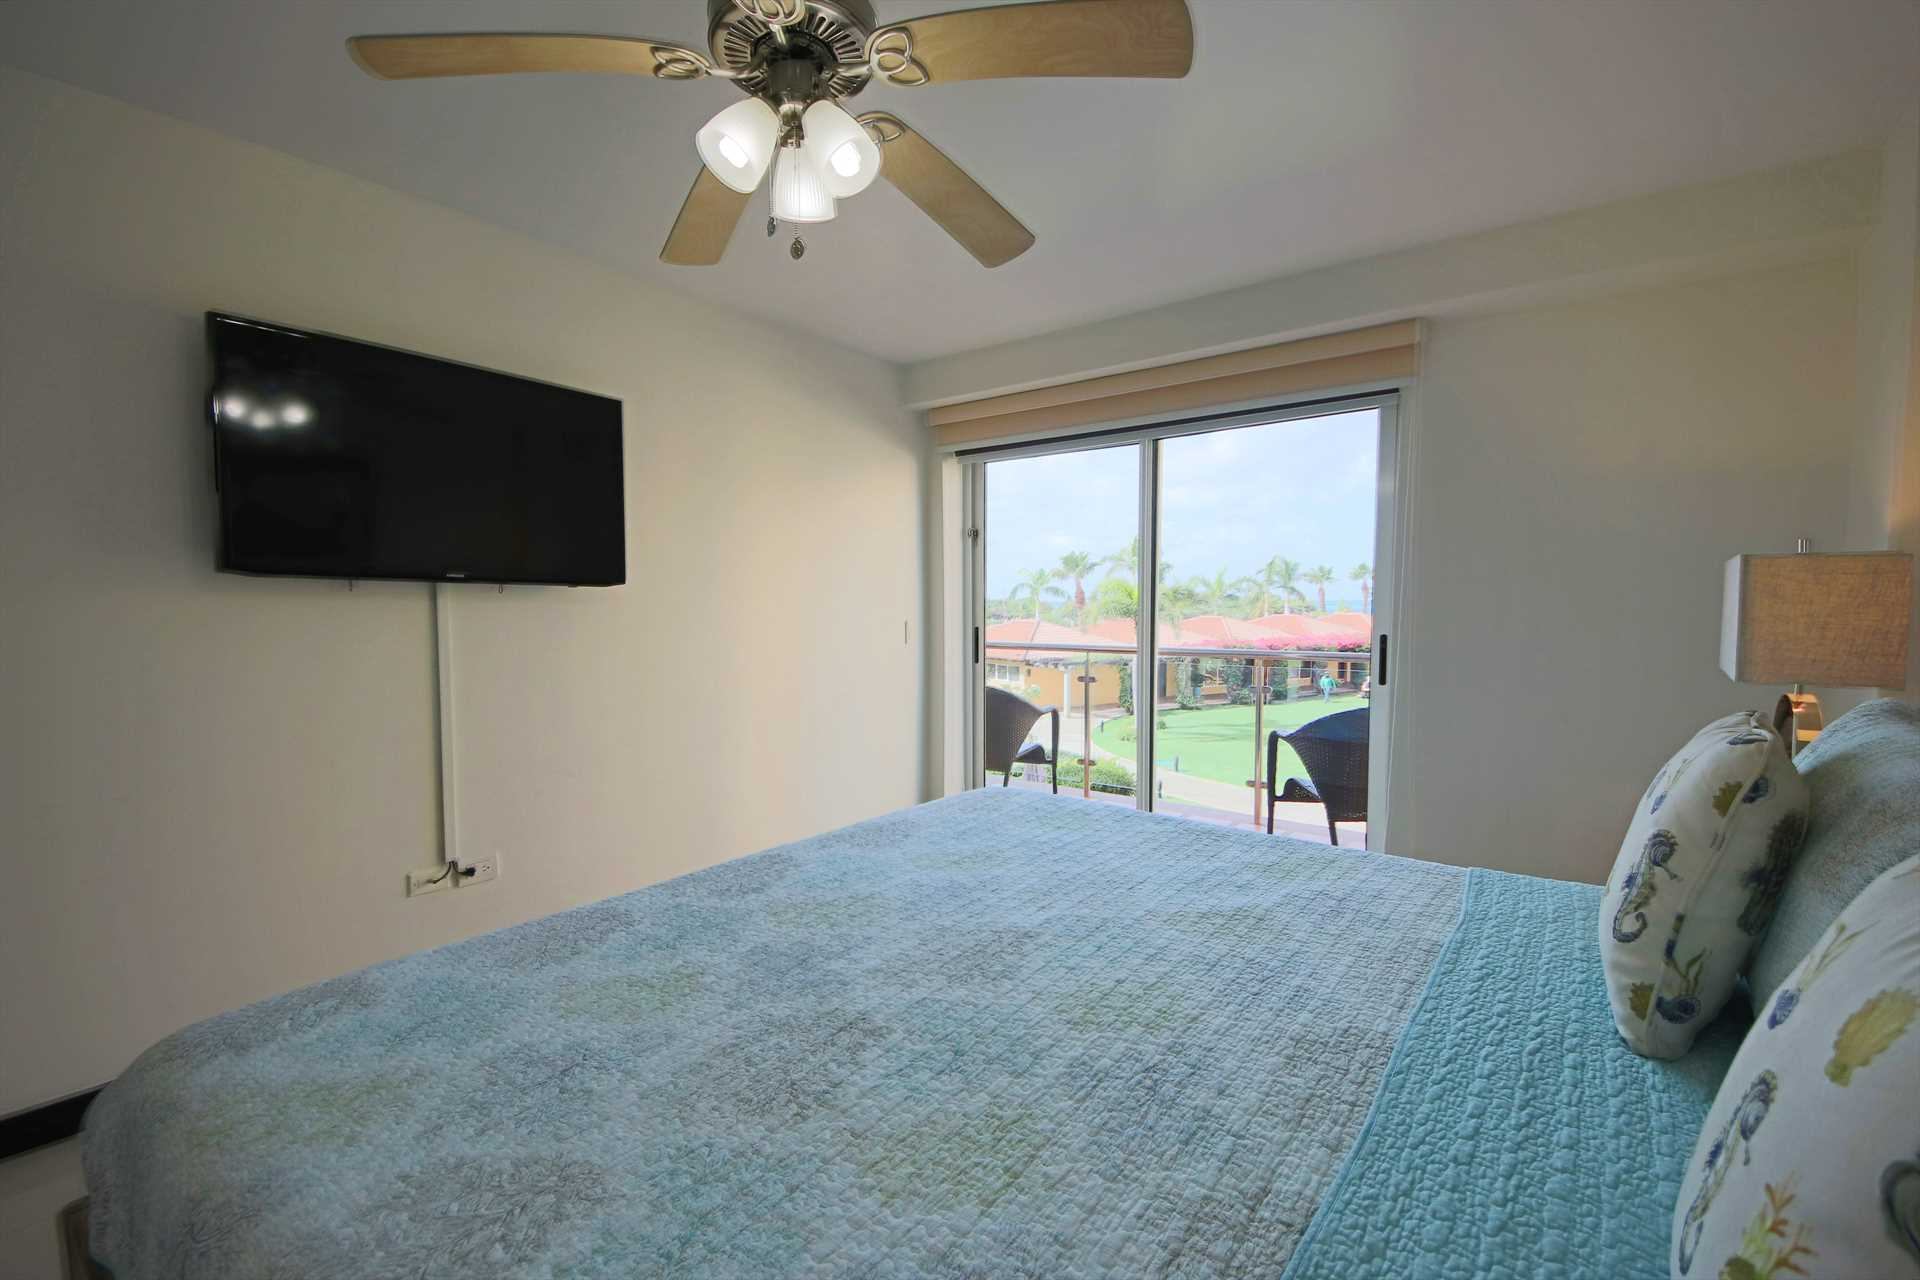 HDTV in master bedroom and access to balcony with ocean view